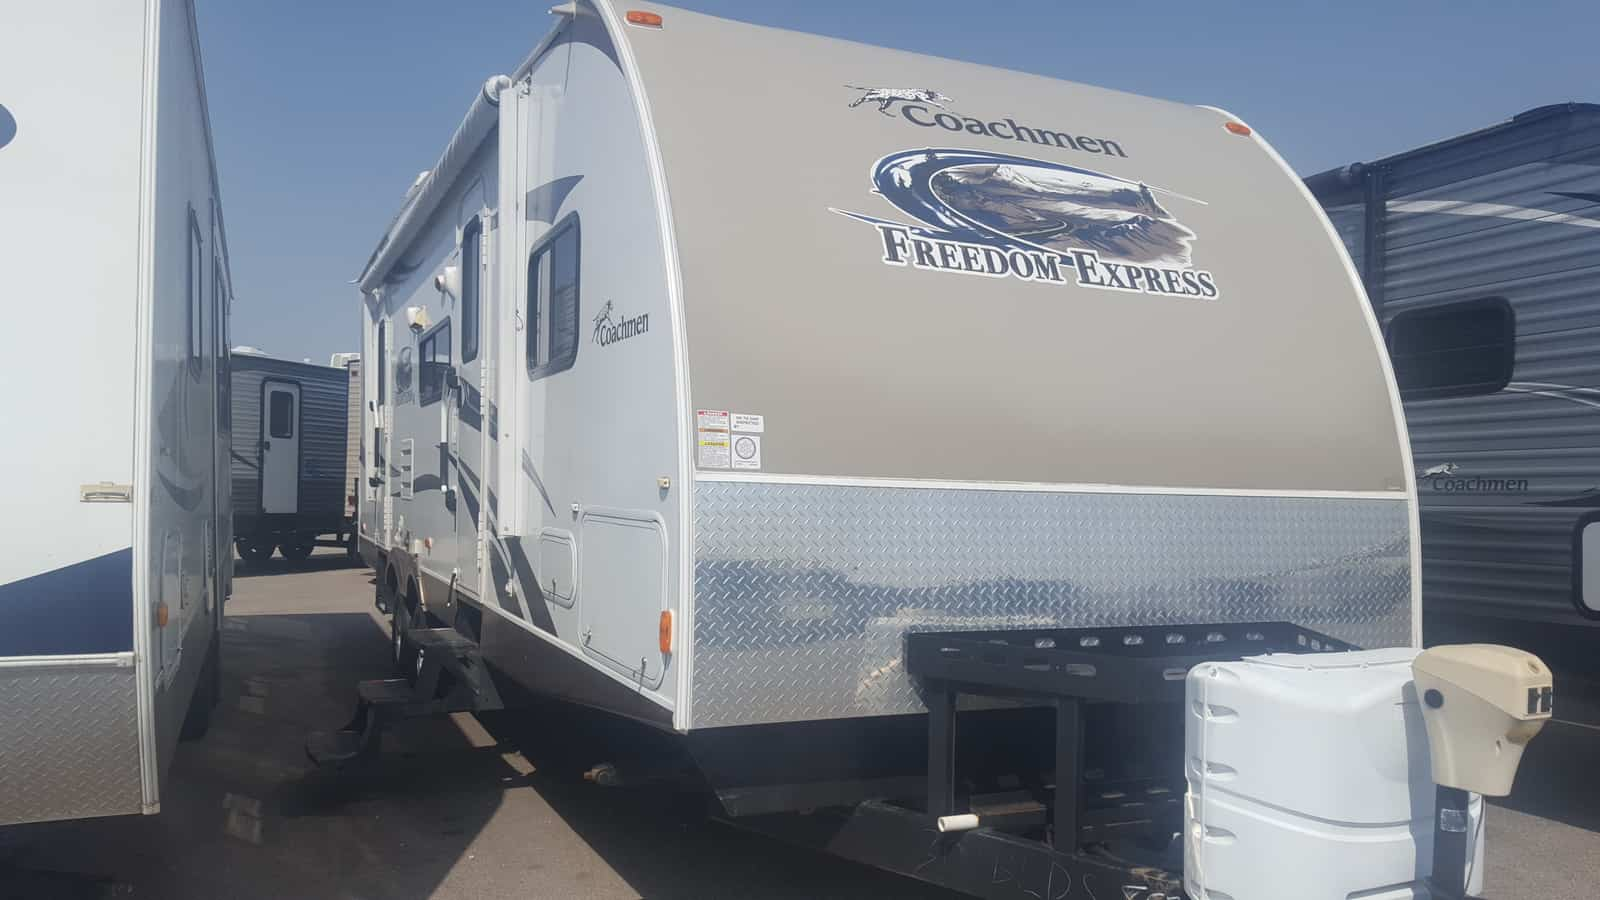 USED 2013 Coachmen FREEDOM EXPRESS 301BLDS - American RV